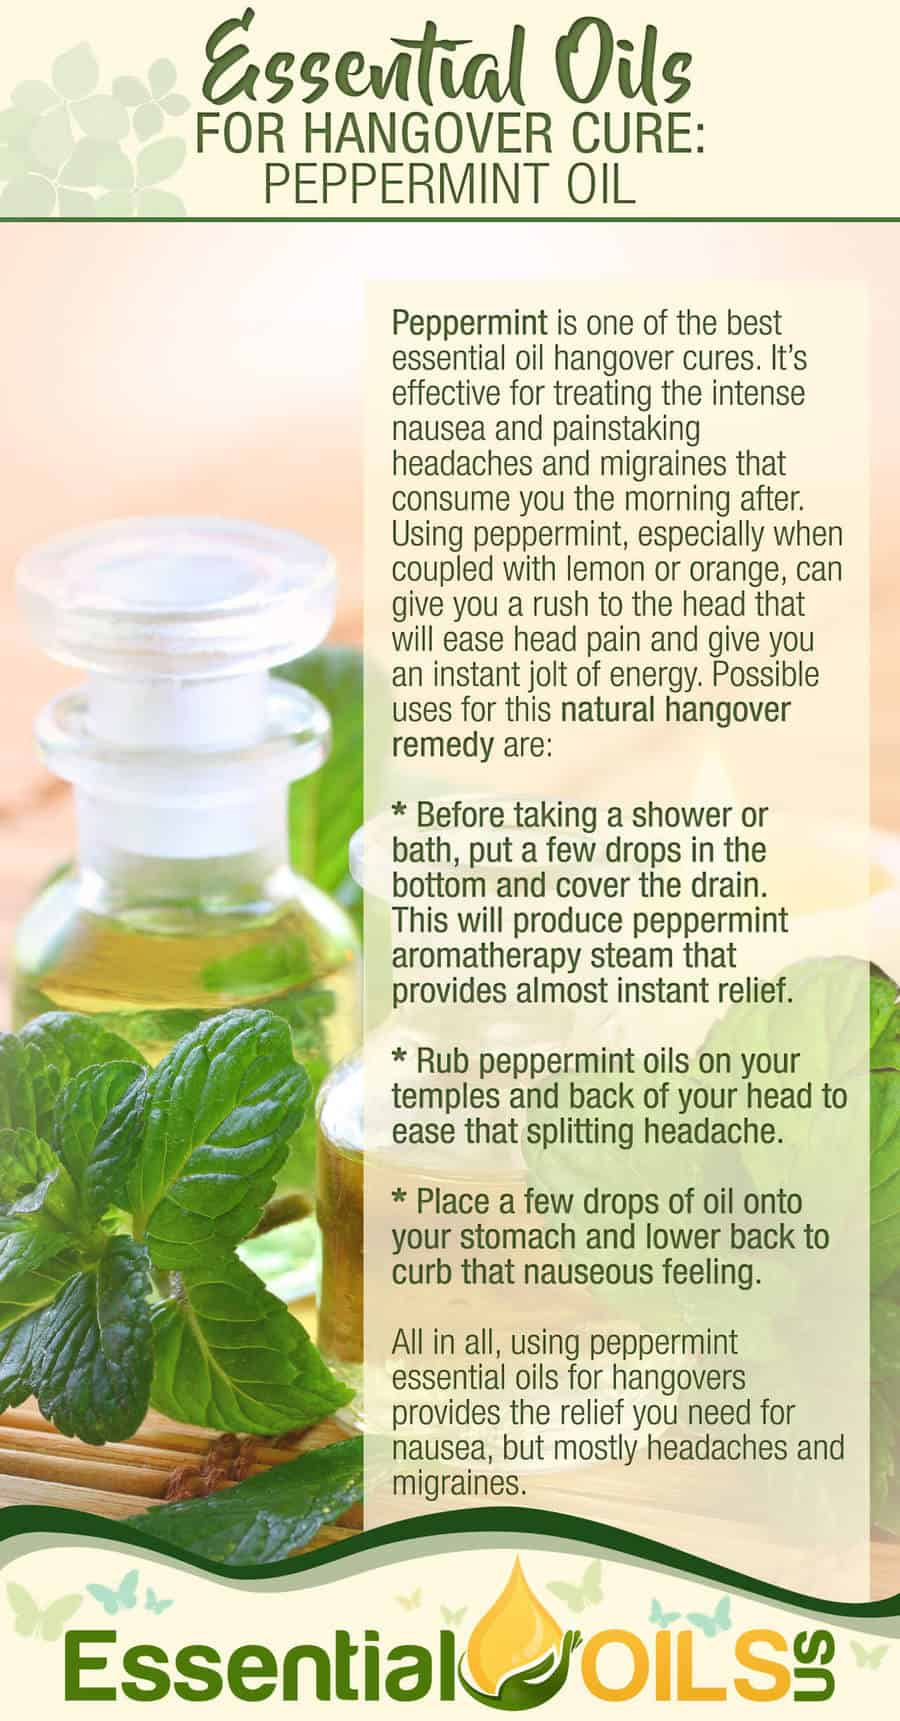 Essential Oils For Hangover - Peppermint